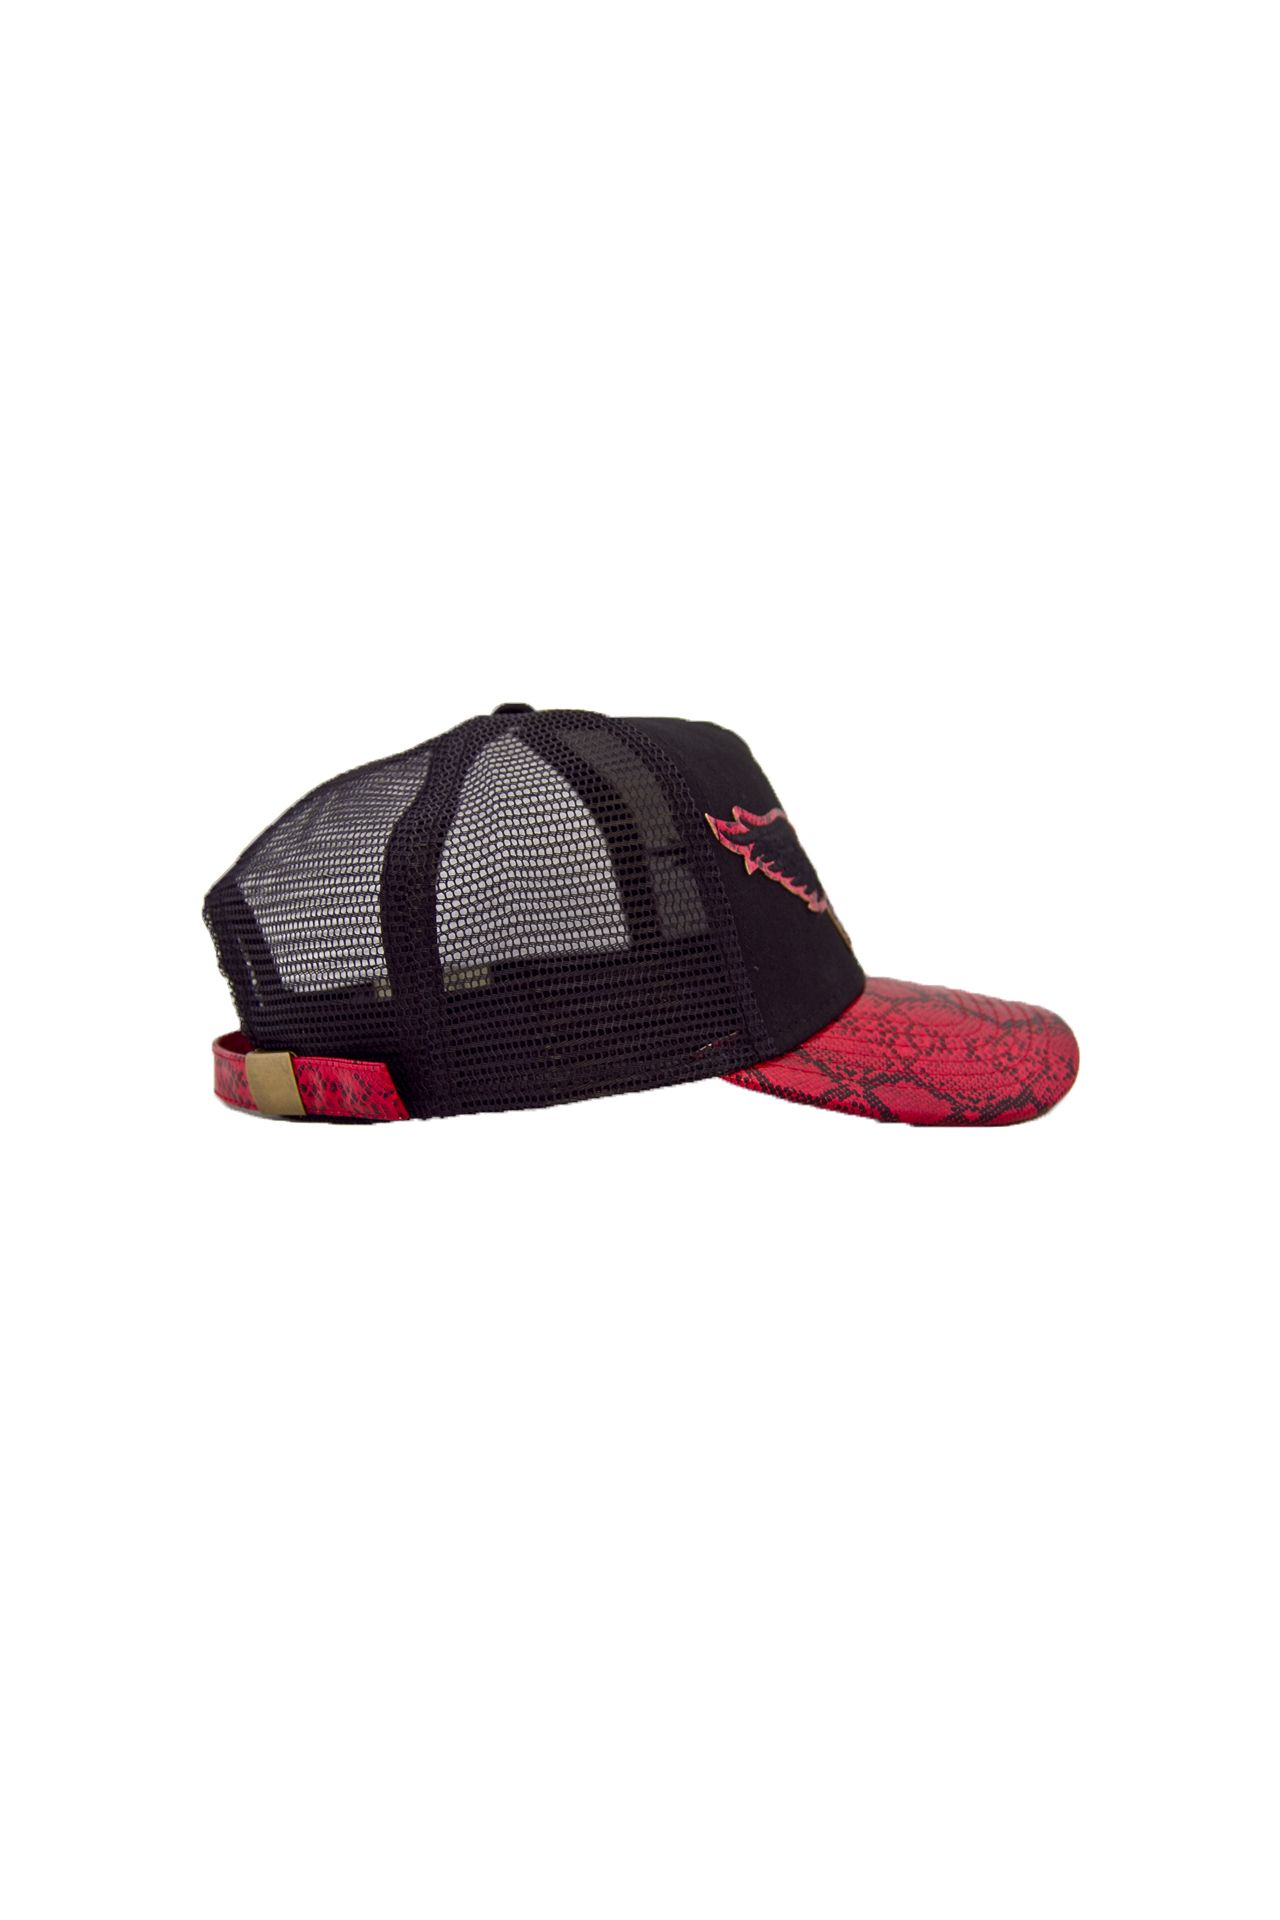 BLACK TWILL CAP WITH RED VISOR